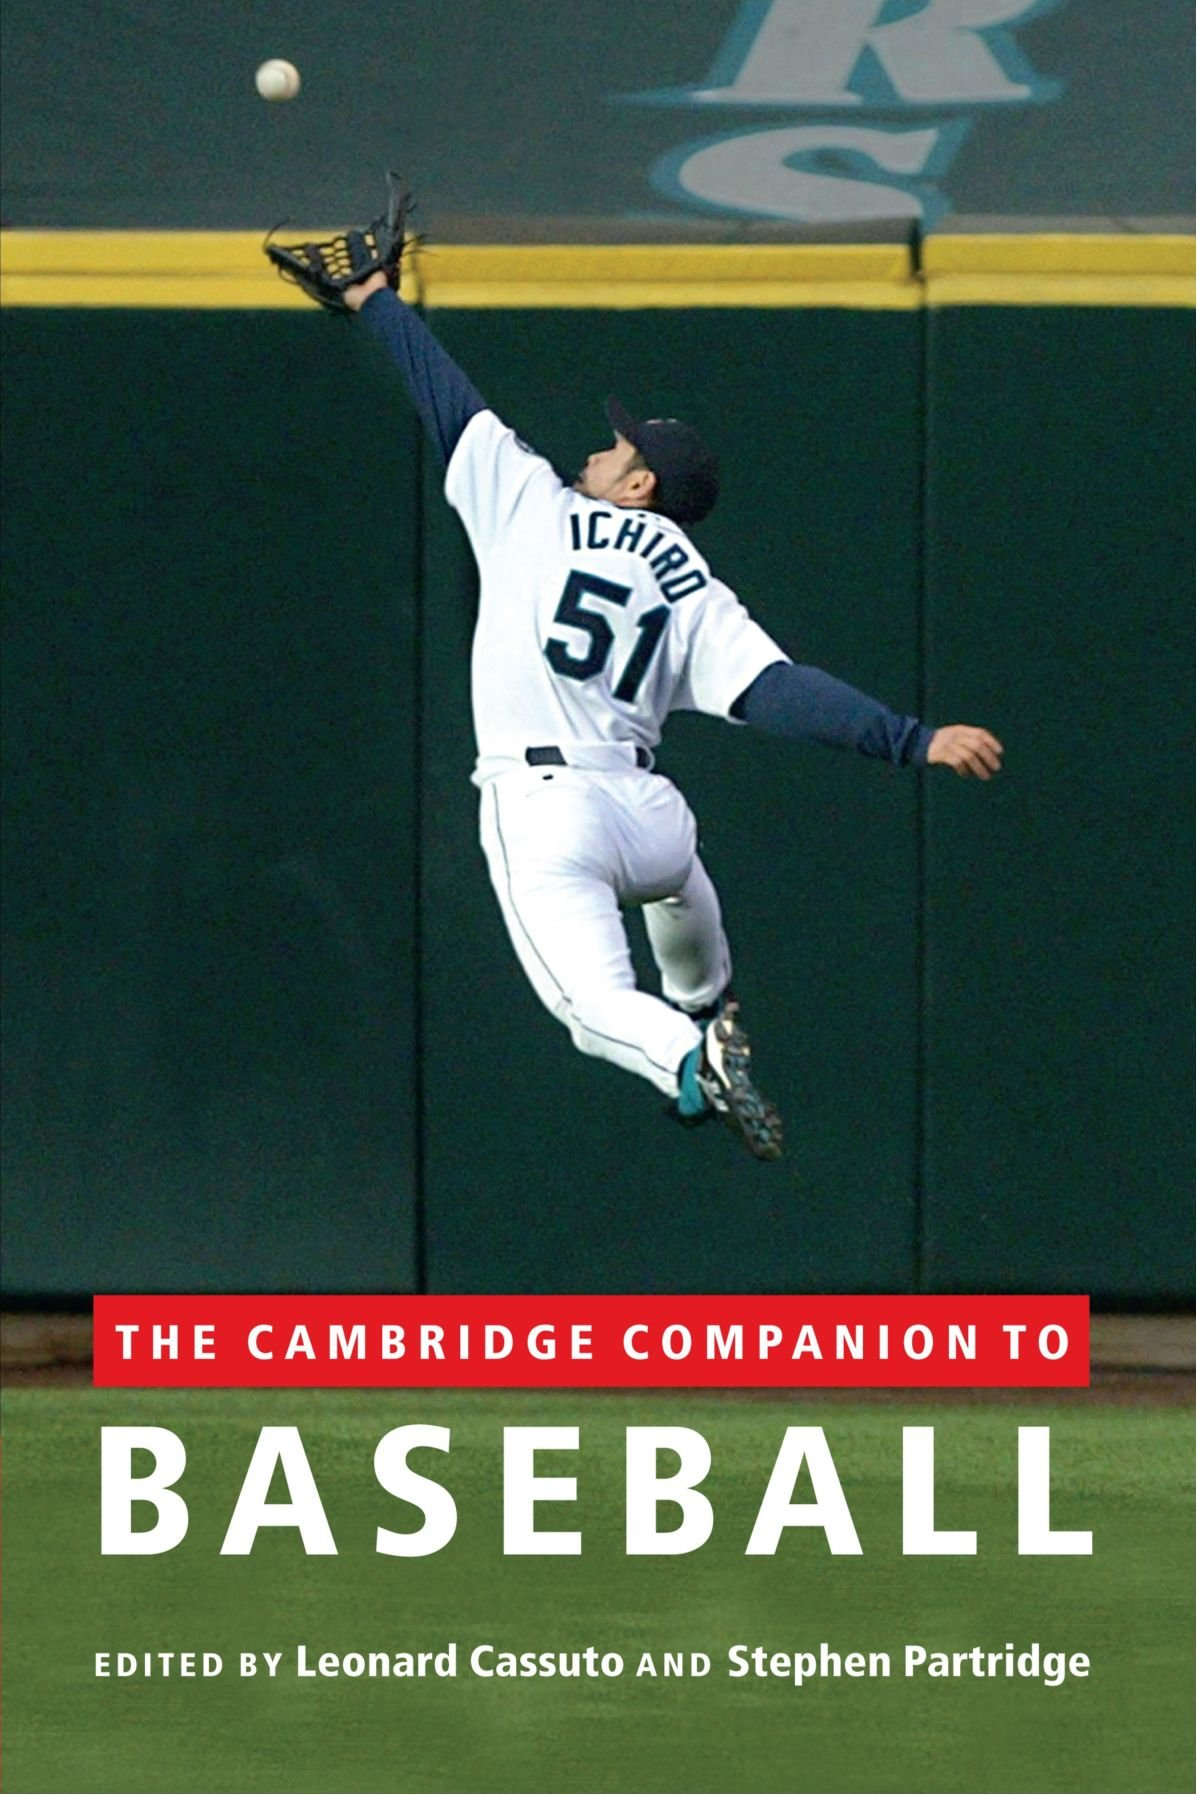 com the cambridge companion to baseball  com the cambridge companion to baseball 9780521145756 leonard cassuto stephen partridge books